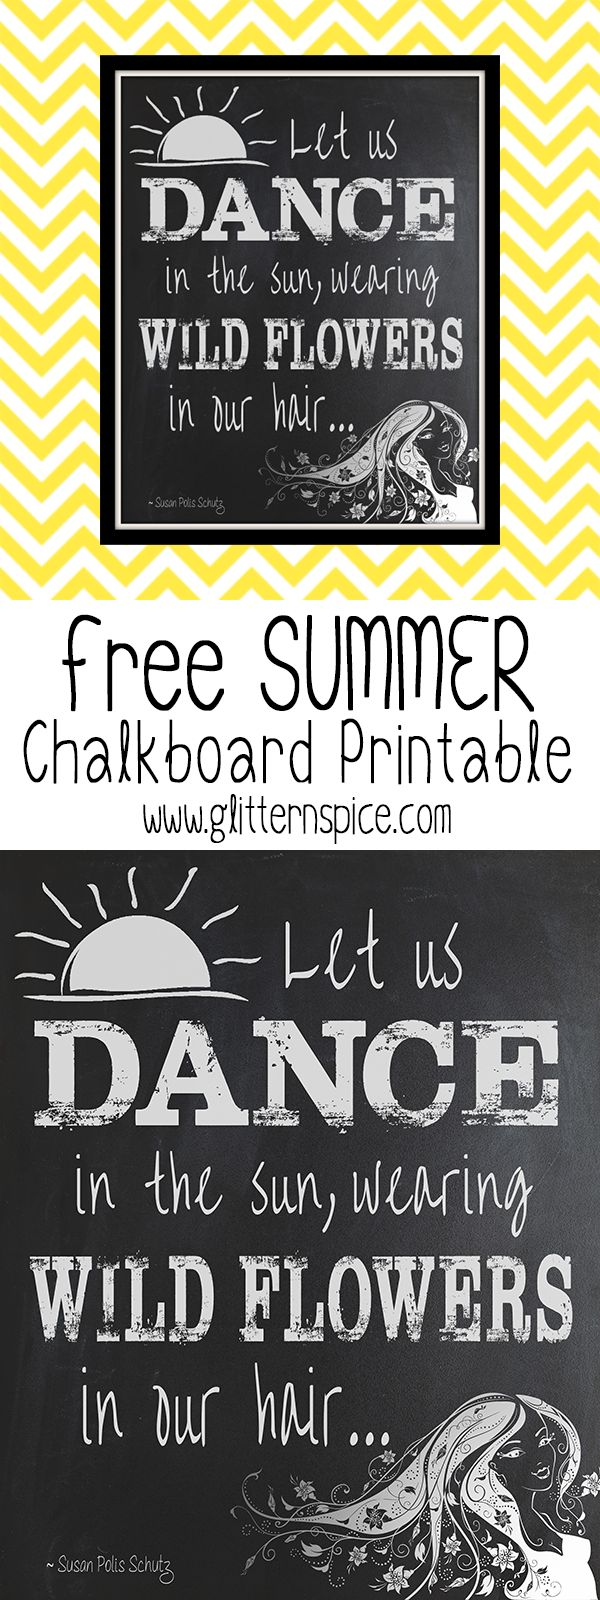 """Free Summer Chalkboard Printable - """"Let us dance in the sun, wearing wild flowers in our hair..."""" ~ Susan Polis Schutz"""